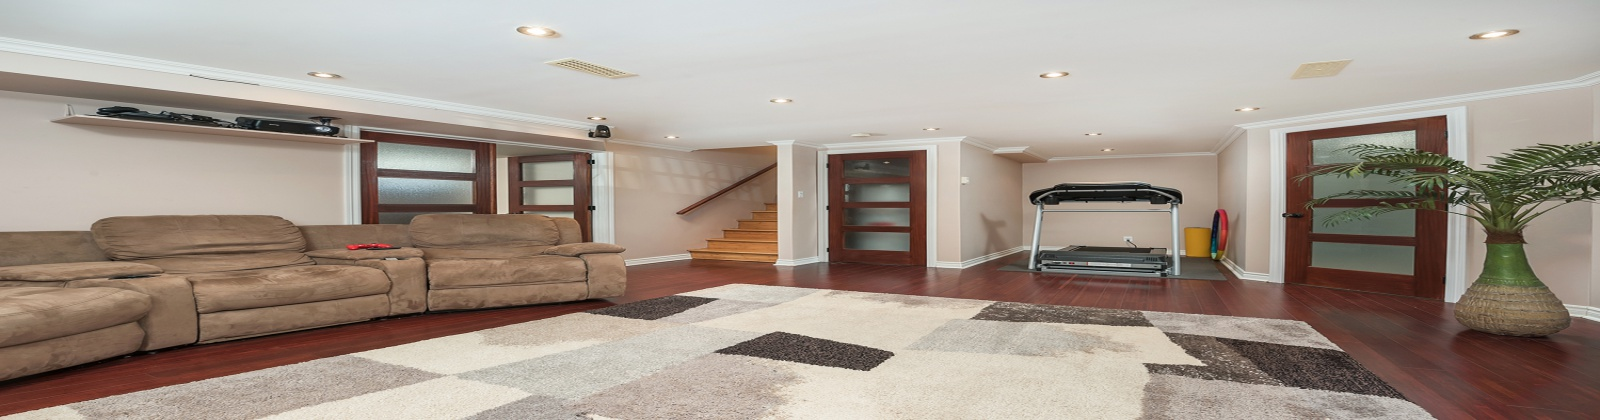 5 Bedrooms Bedrooms, 17 Rooms Rooms,2 BathroomsBathrooms,Apartment,For Sale,1023